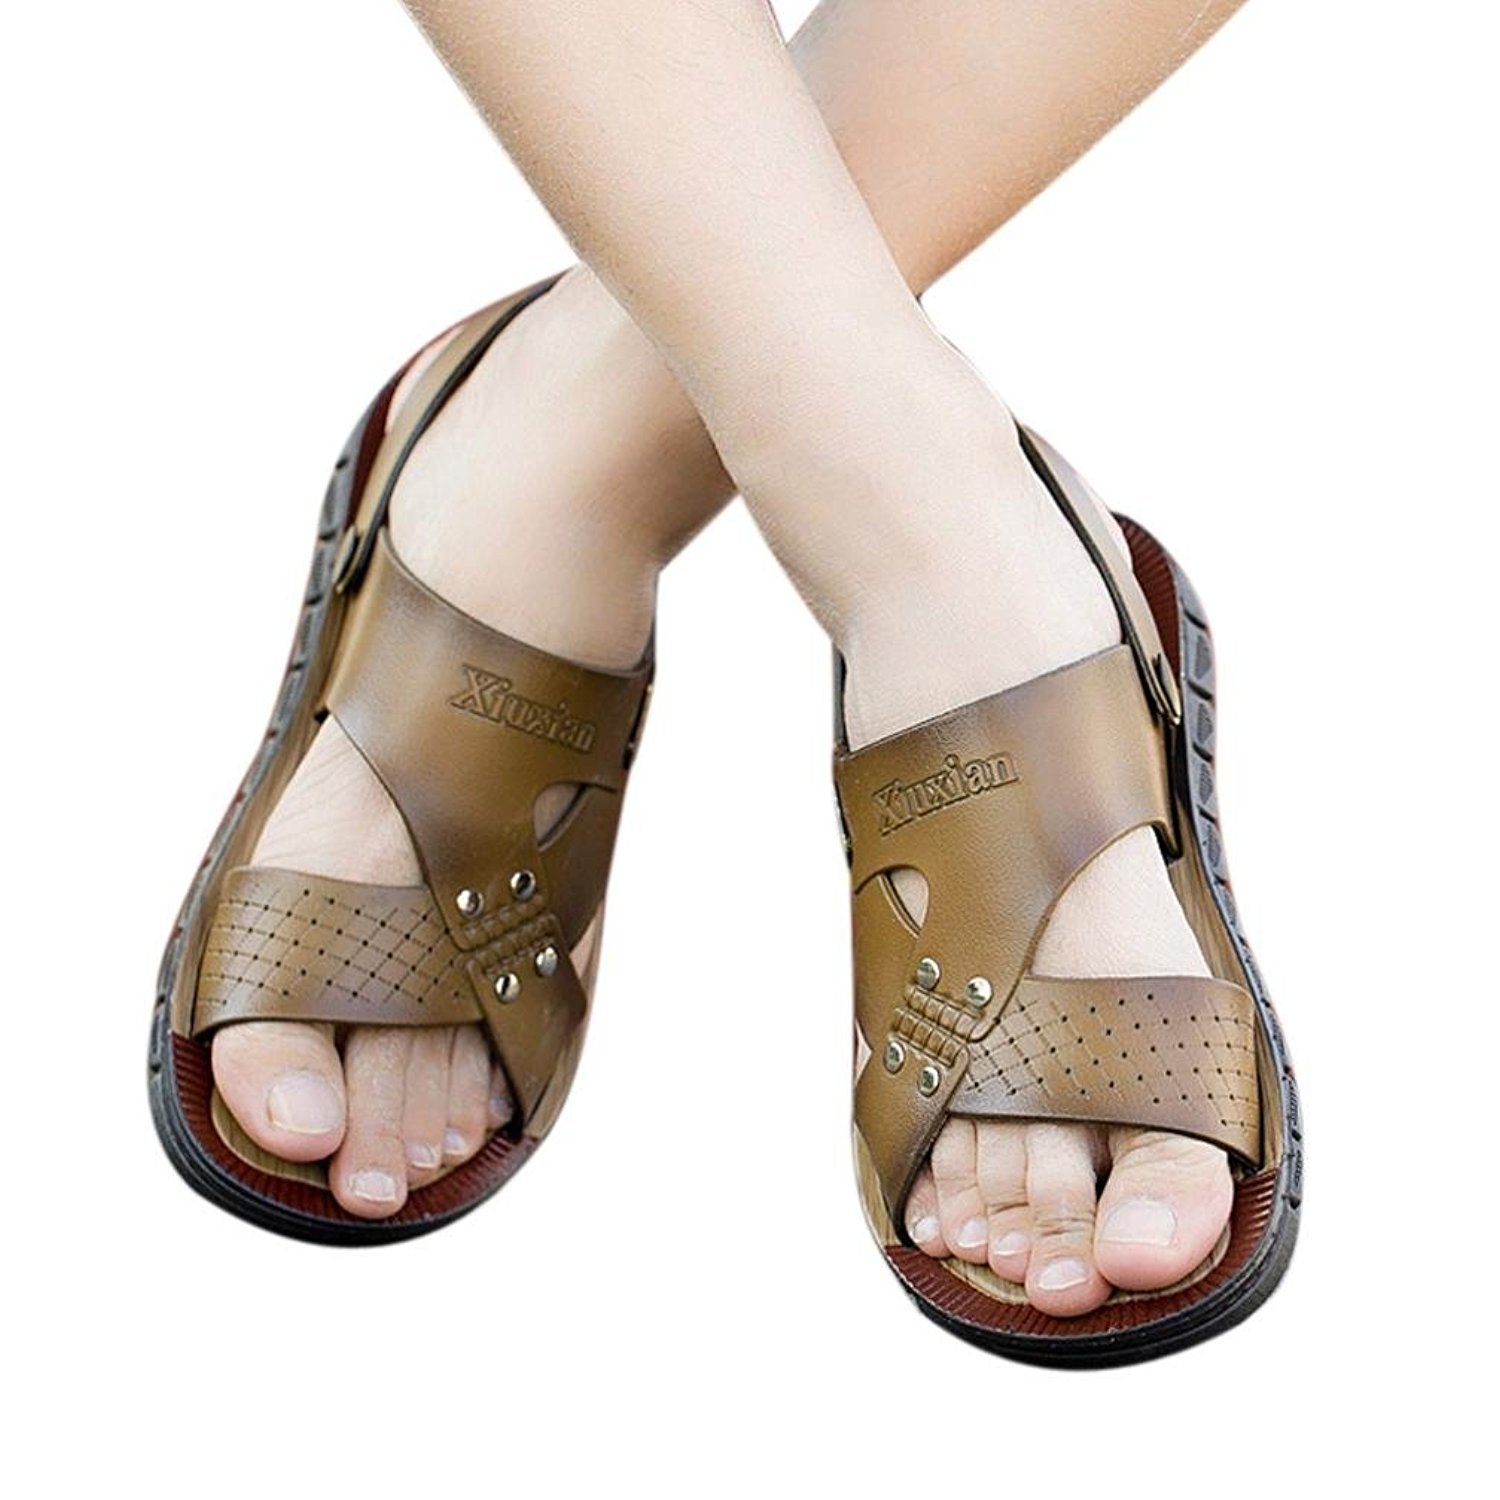 3c8cfc40e54 Get Quotations · Sikye Male Athletic Sandal